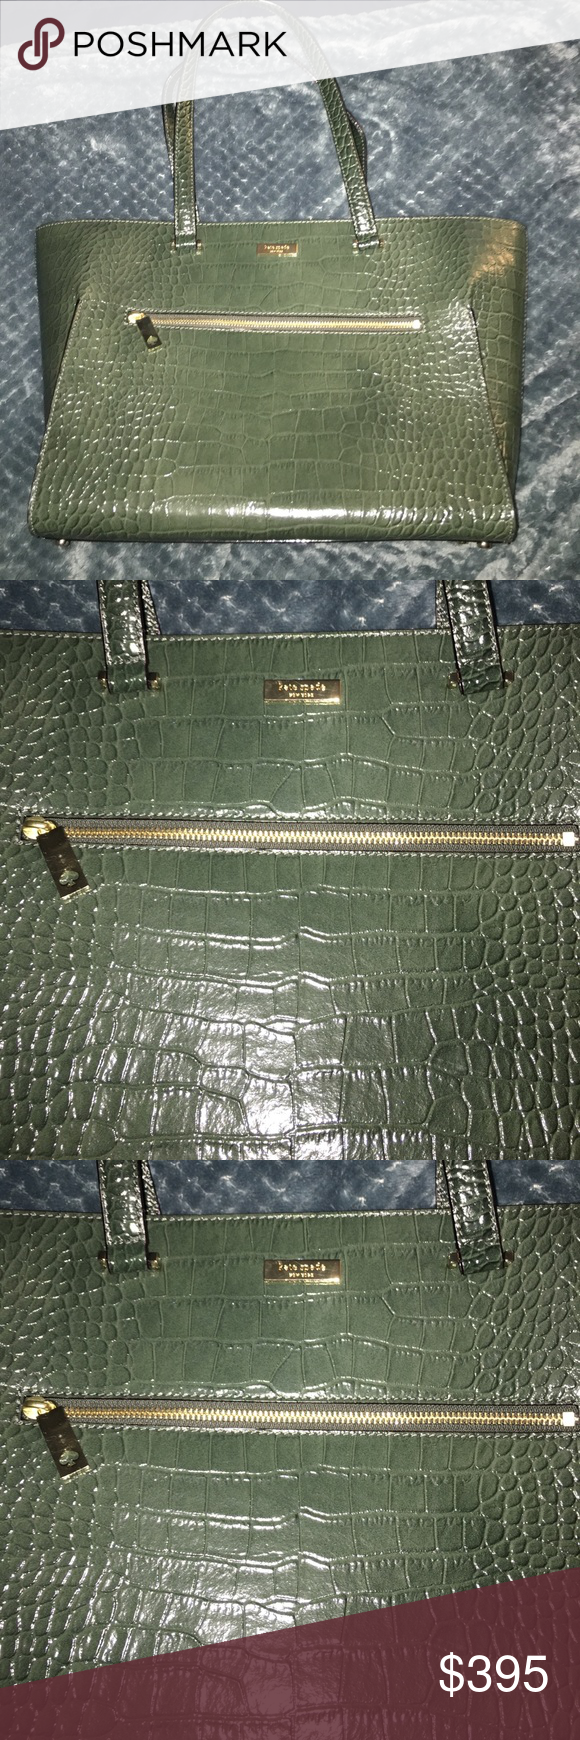 Kate Spade ♠️ Green Large Purse Used 2-3 times. Purse is to big and heavy for me since I had 3 spine surgeries. It looks brand new still. Has a zipper poker in the inside and two open pockets as well. On the outside it has a zipper poker as well. I love the color green. I hate to part with it but I can no longer use it or near future. A huge lost for me and a bigger gain for you. No low balling please this authentic Kate Spade and already at a great price. Free of scratches or stains. Smoke…